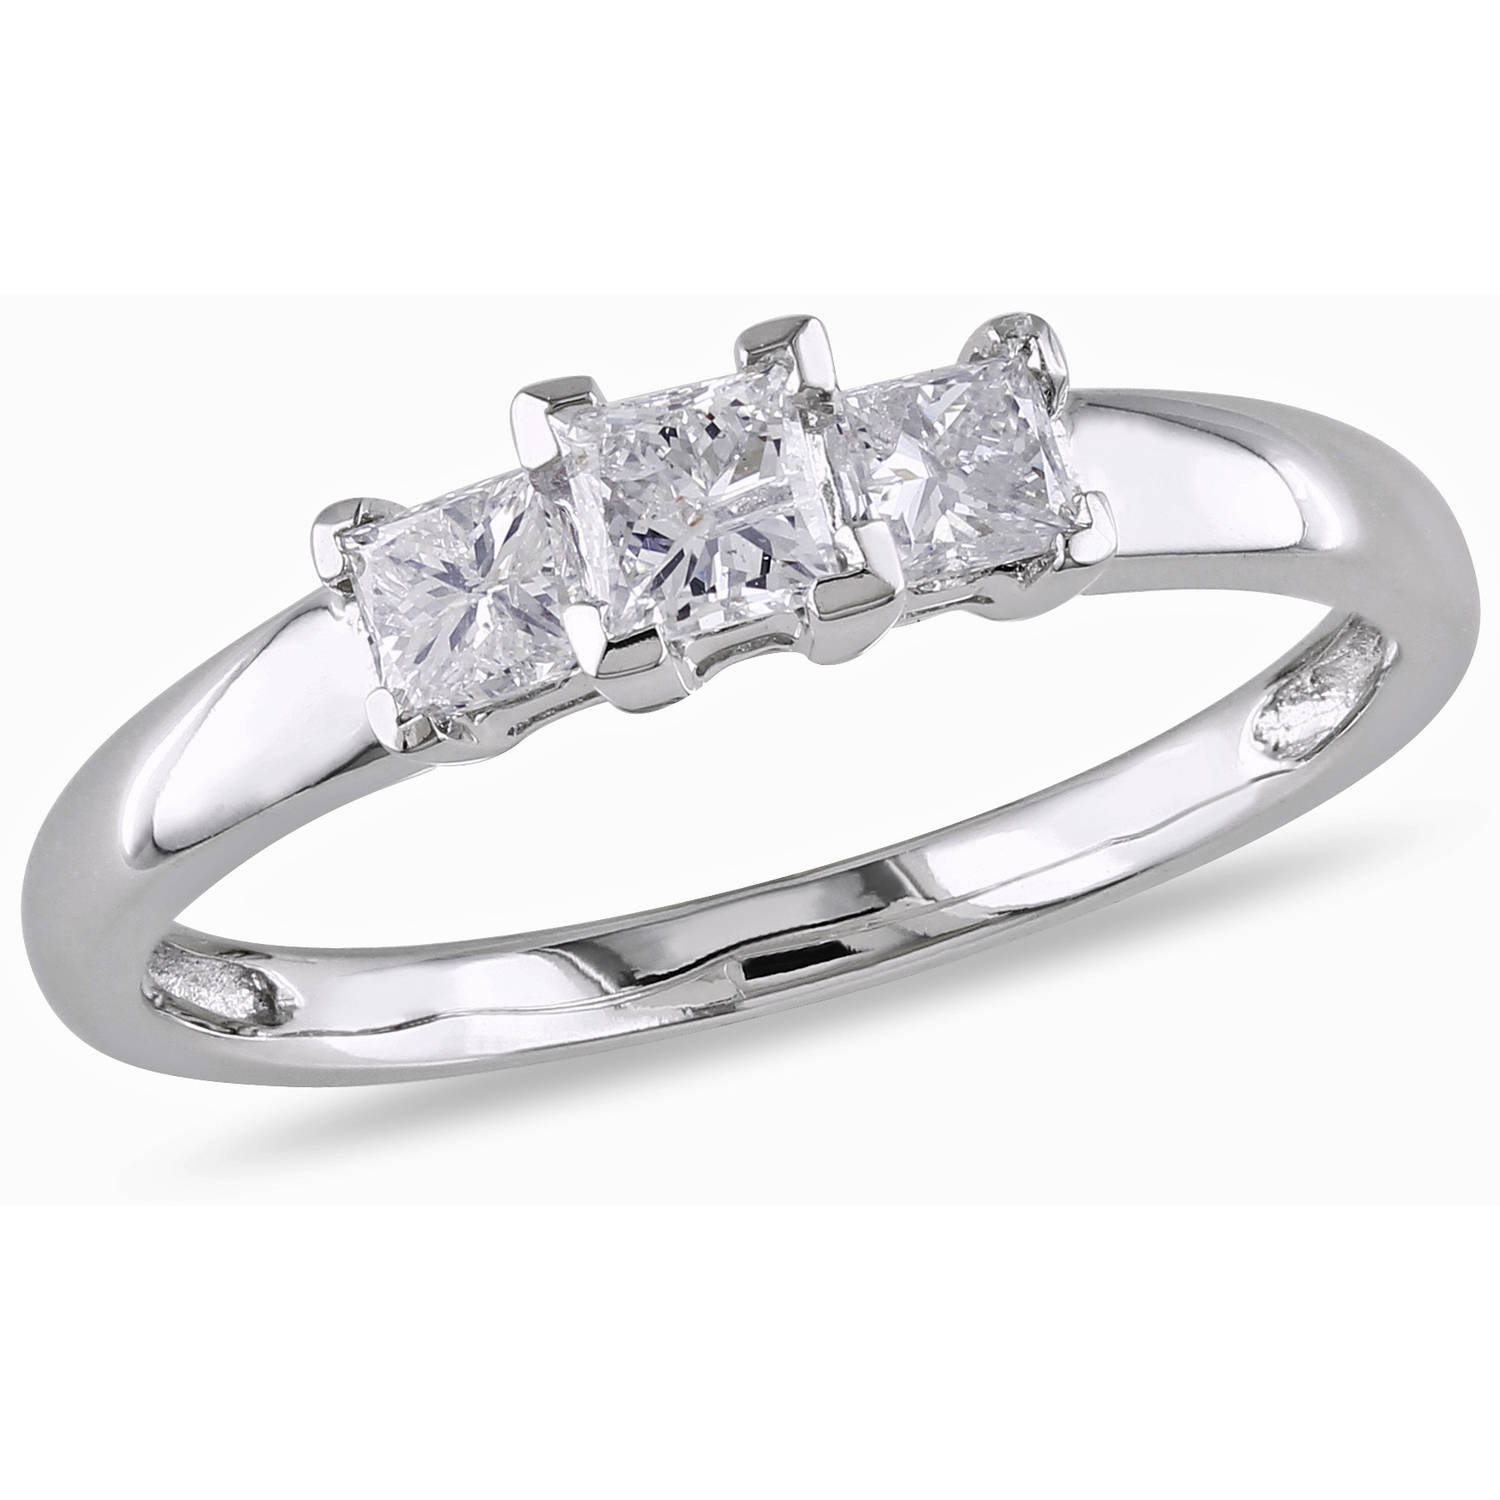 Miabella 12 Carat TW Princess Cut Certified Diamond Three Stone